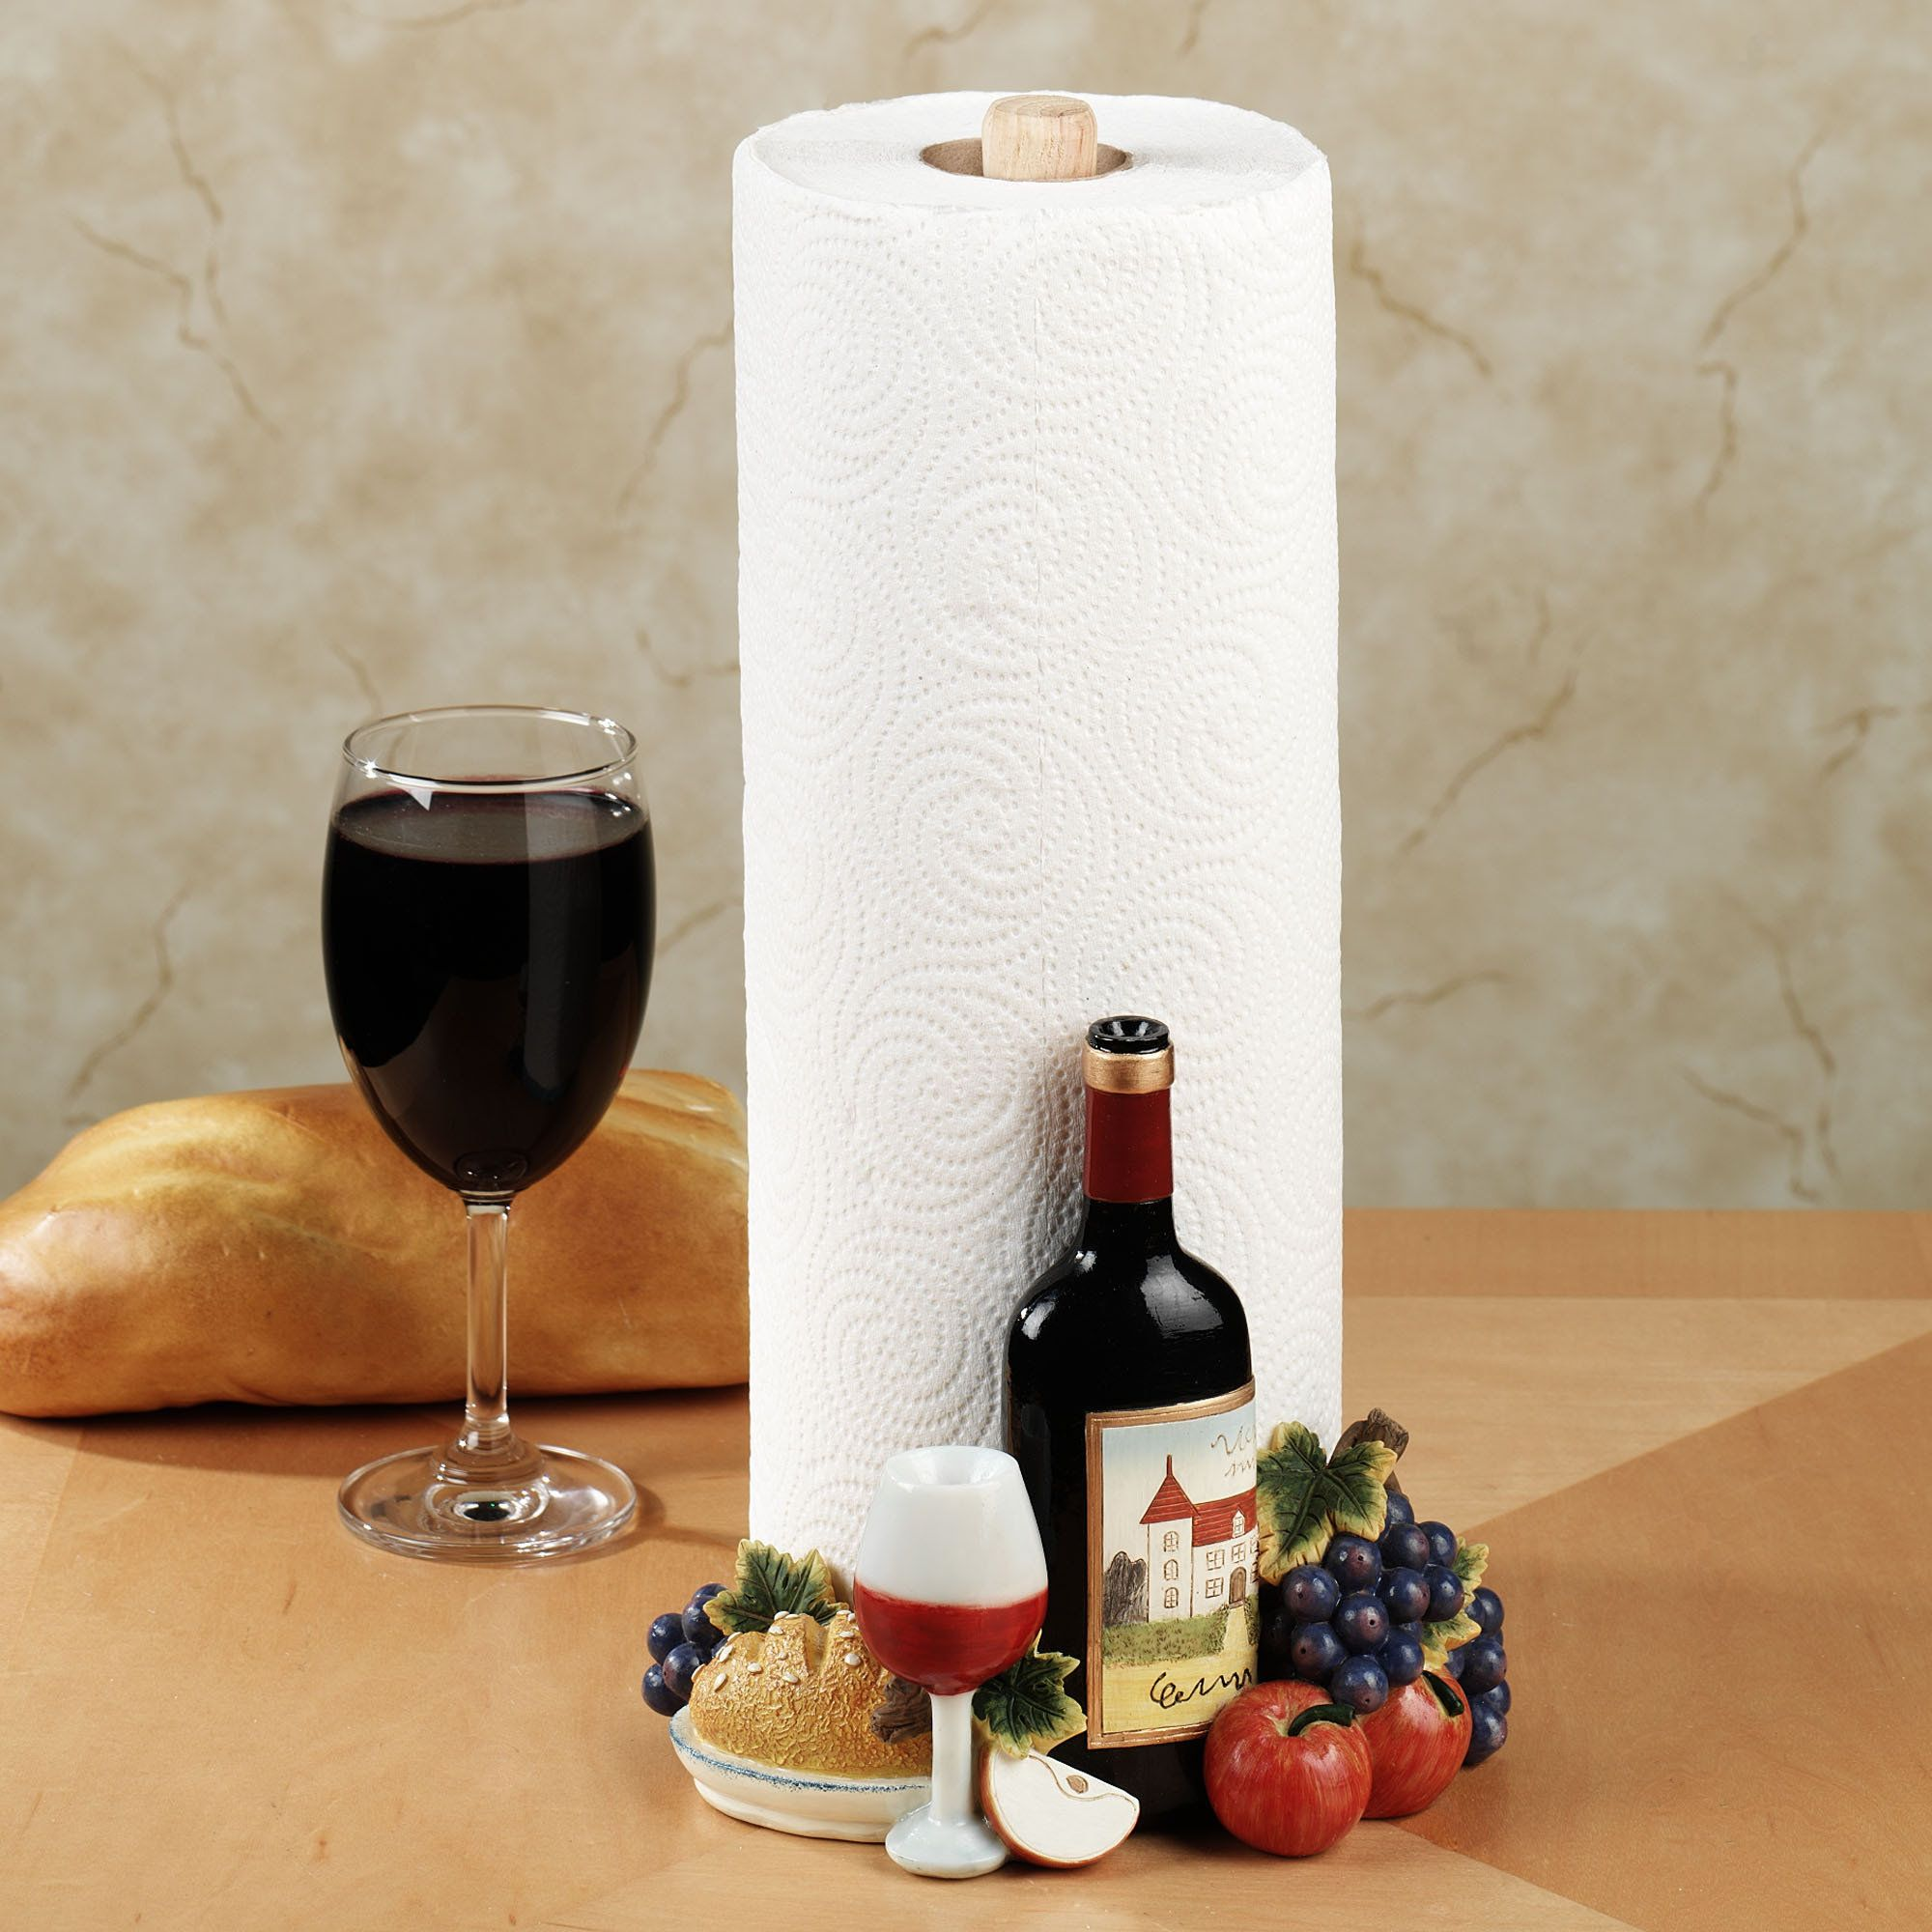 Fabulous paper towel holders for bathroom accessories - Bathroom accessories paper towel holder ...